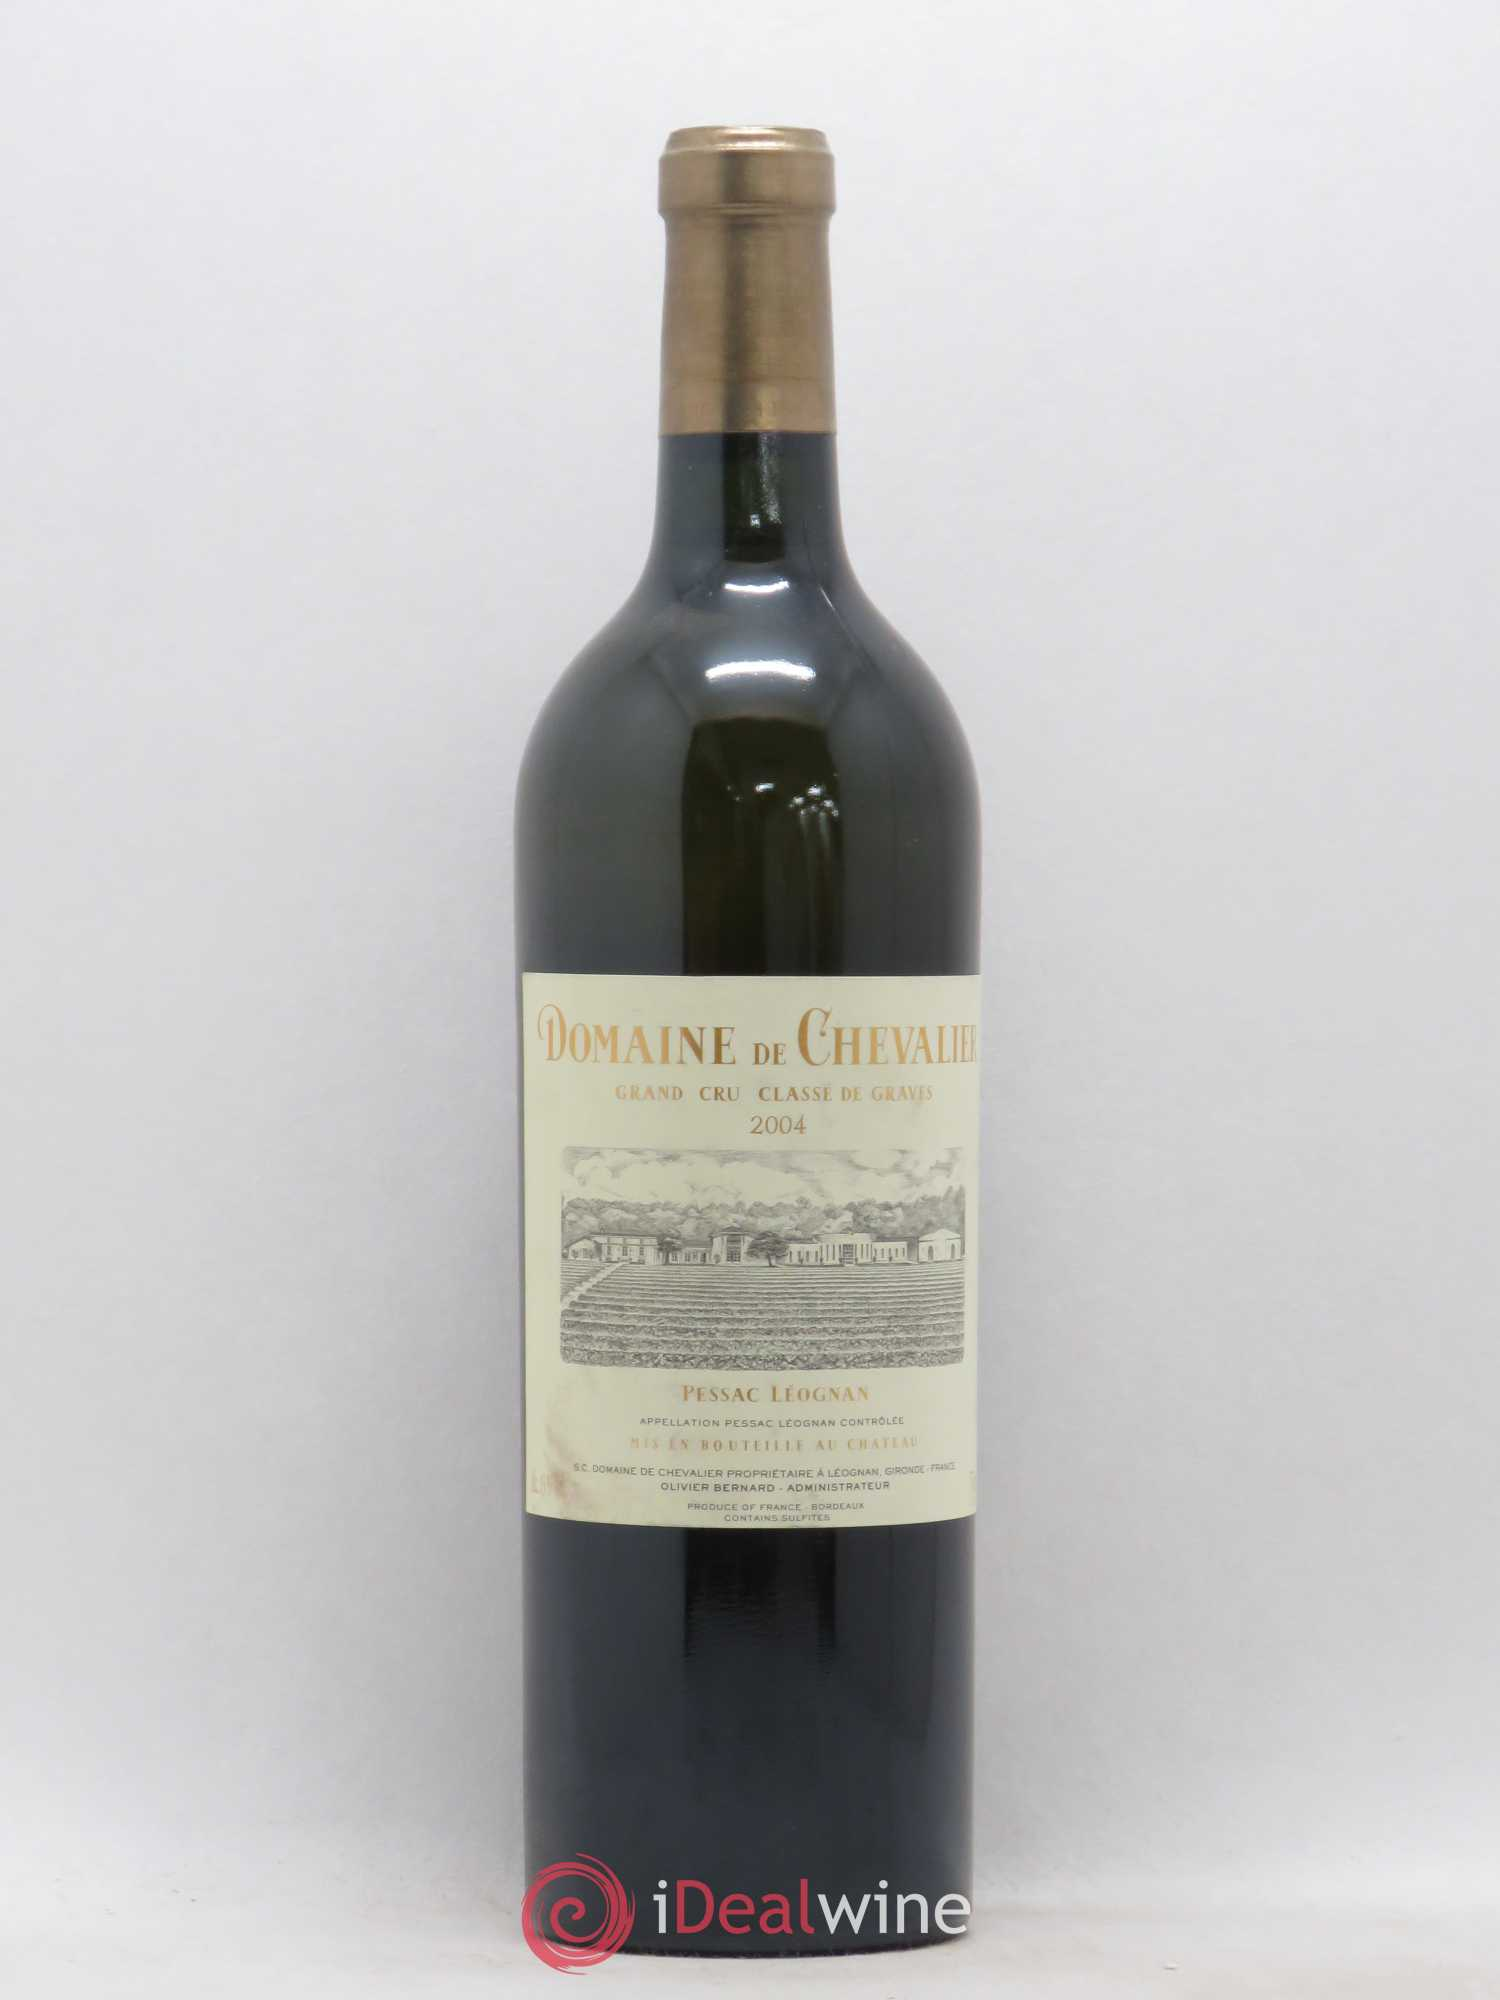 Domaine de Chevalier Cru Classé de Graves  2004 - Lot of 1 Bottle